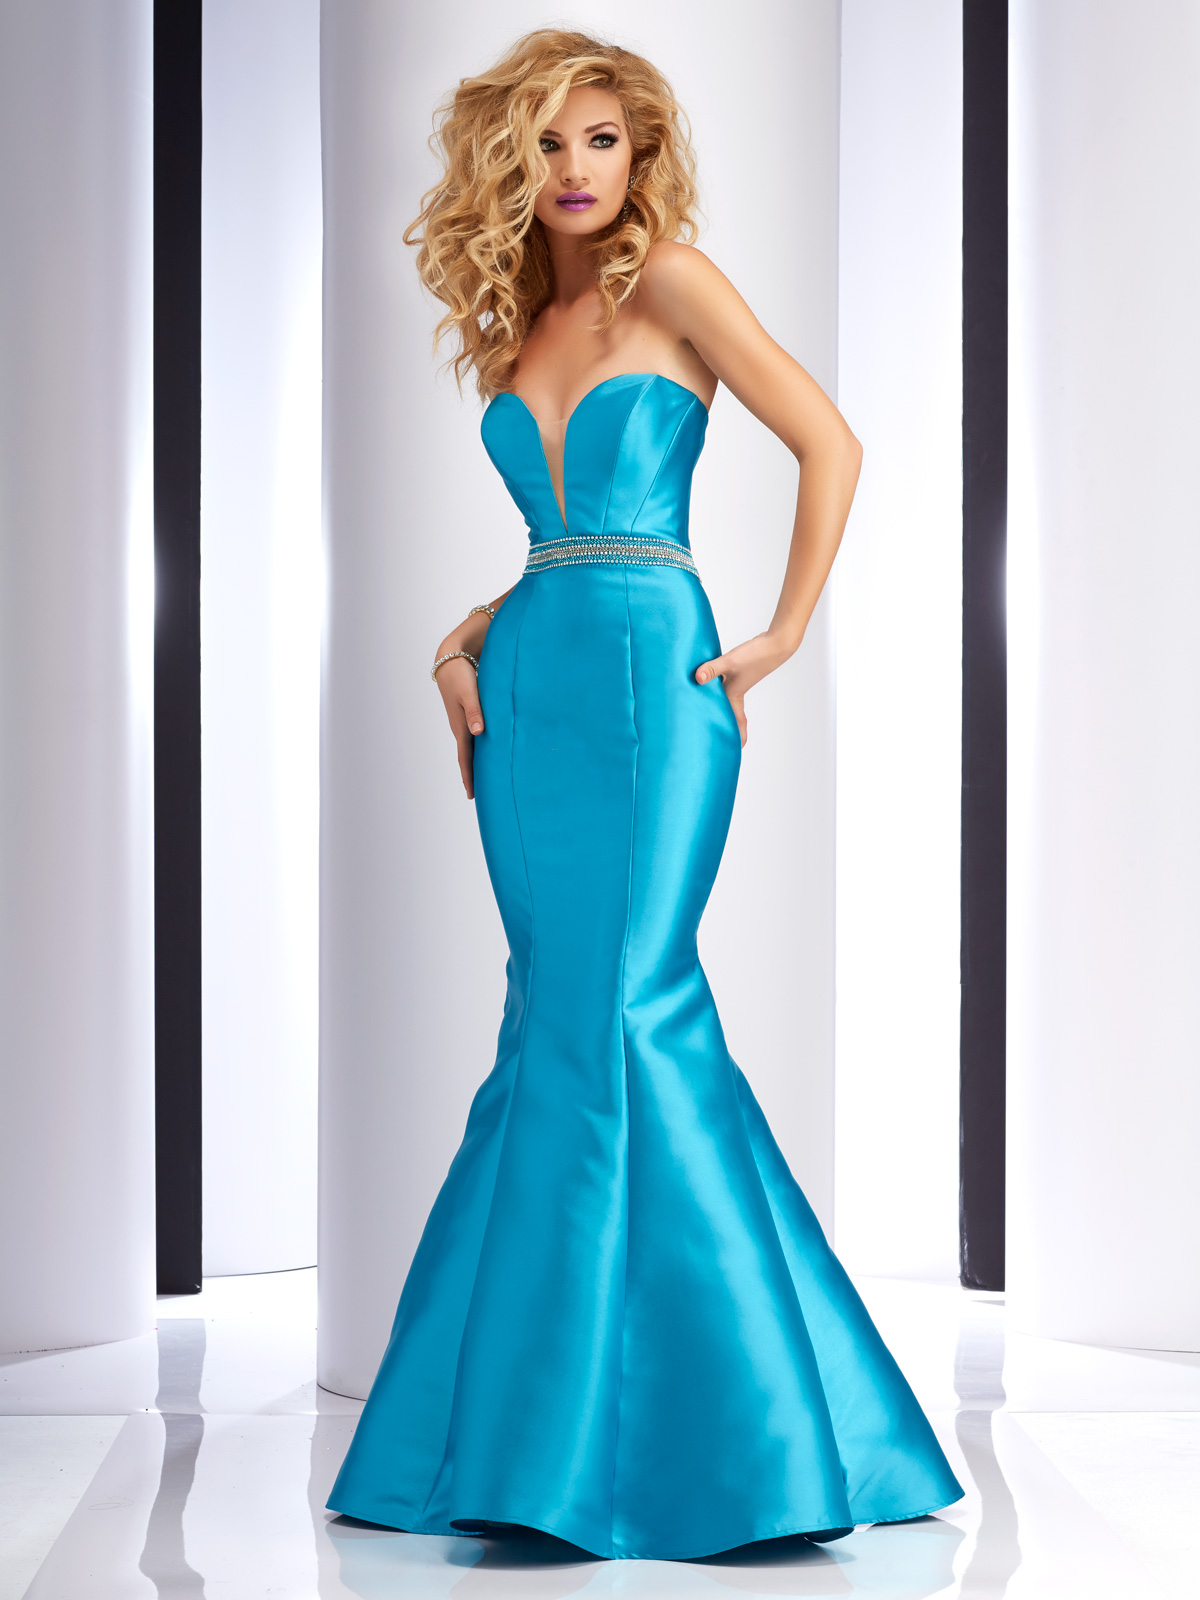 Clarisse 2813 Prom Dress | Promgirl.net